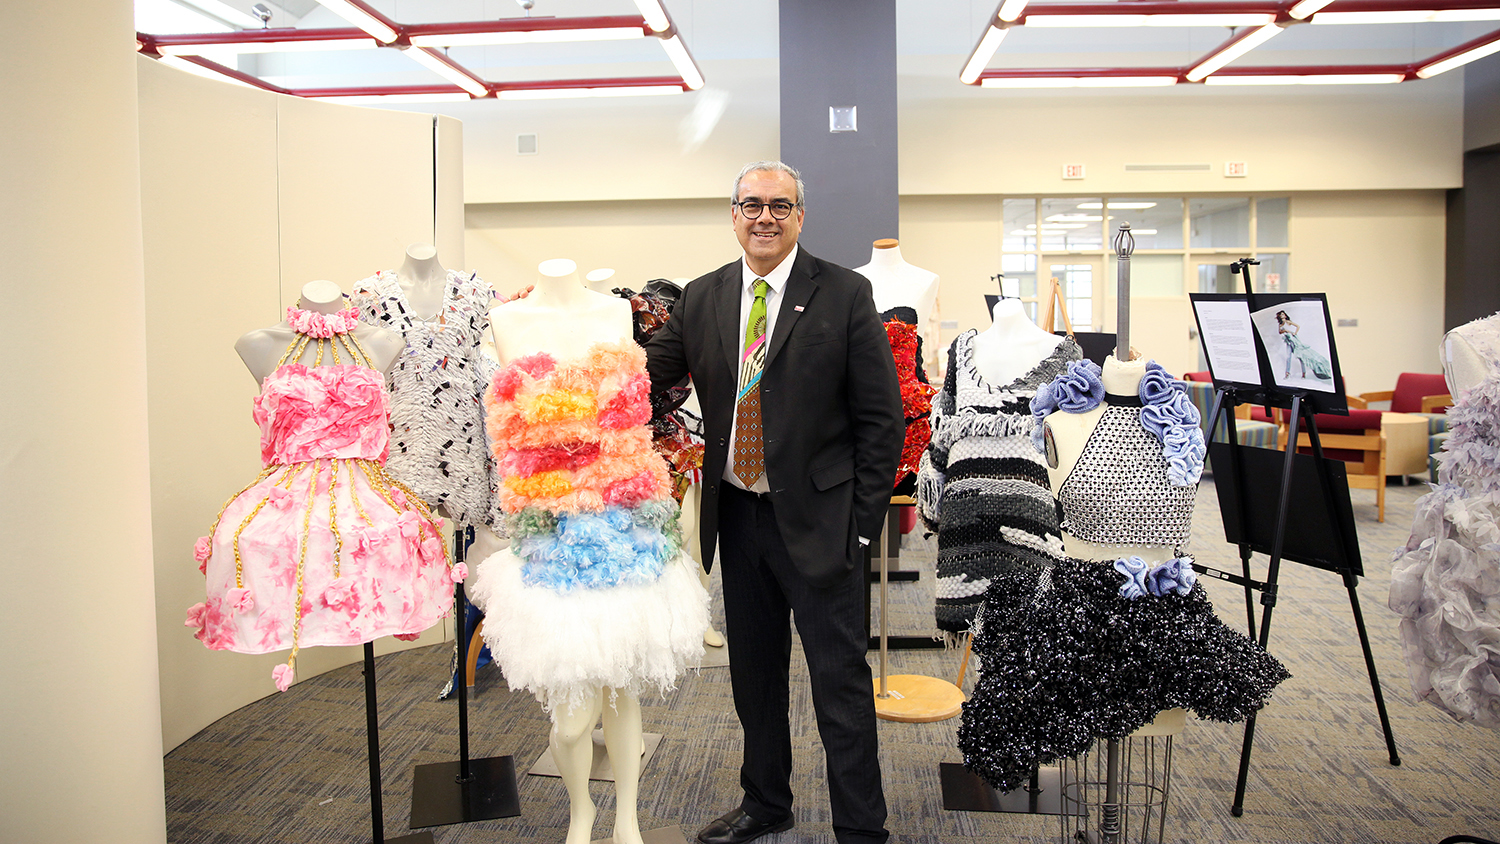 Leader of the Year Andre West stands with student work in the iLab at the College of Textiles